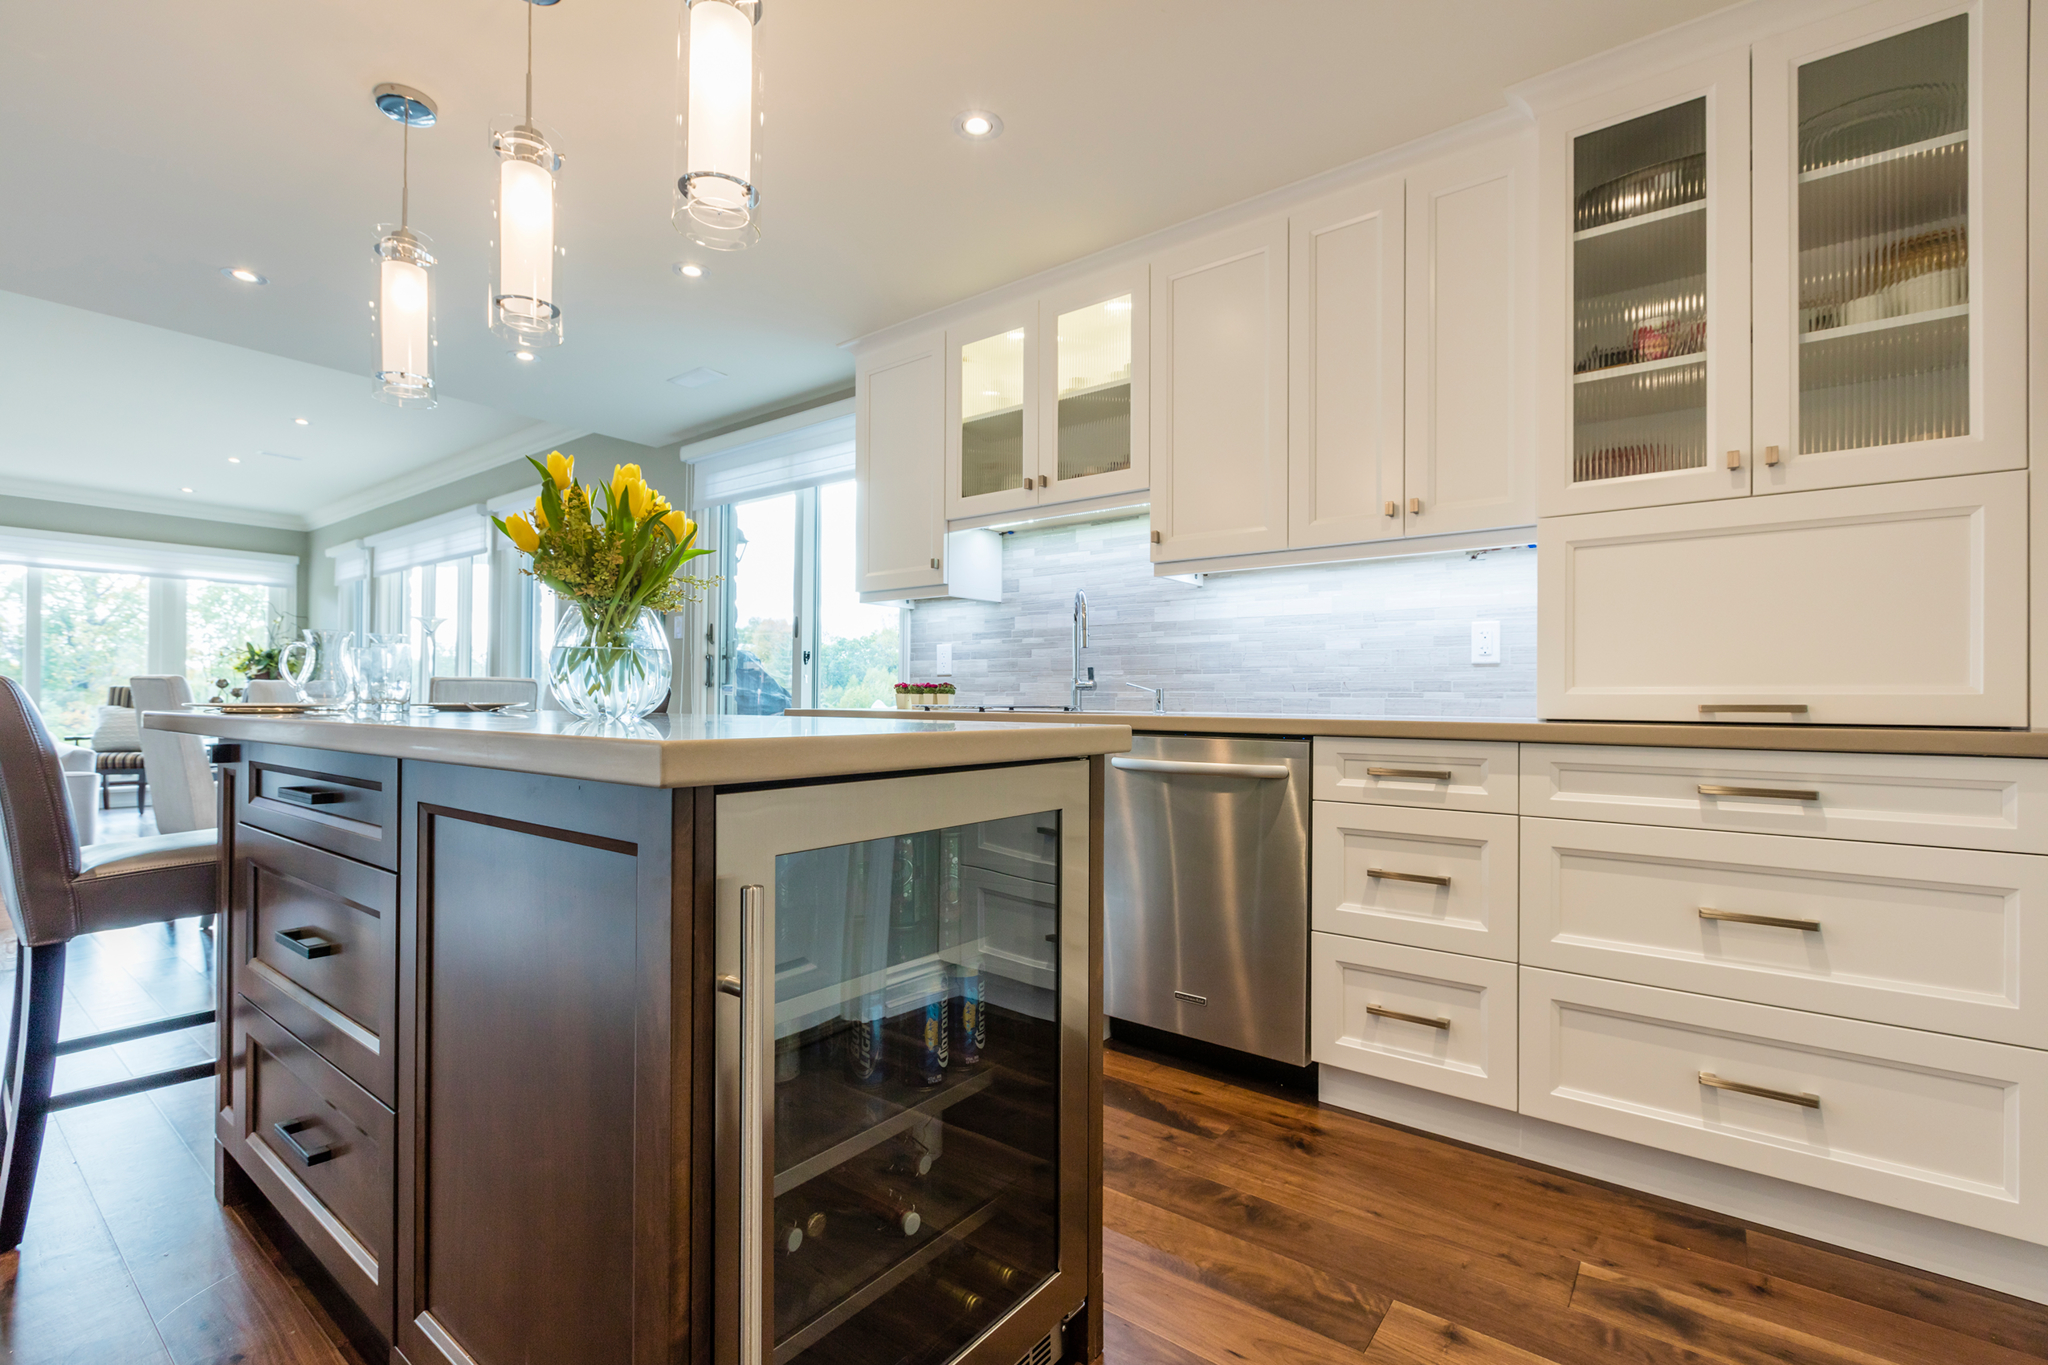 Images Bayview Kitchen Design Inc